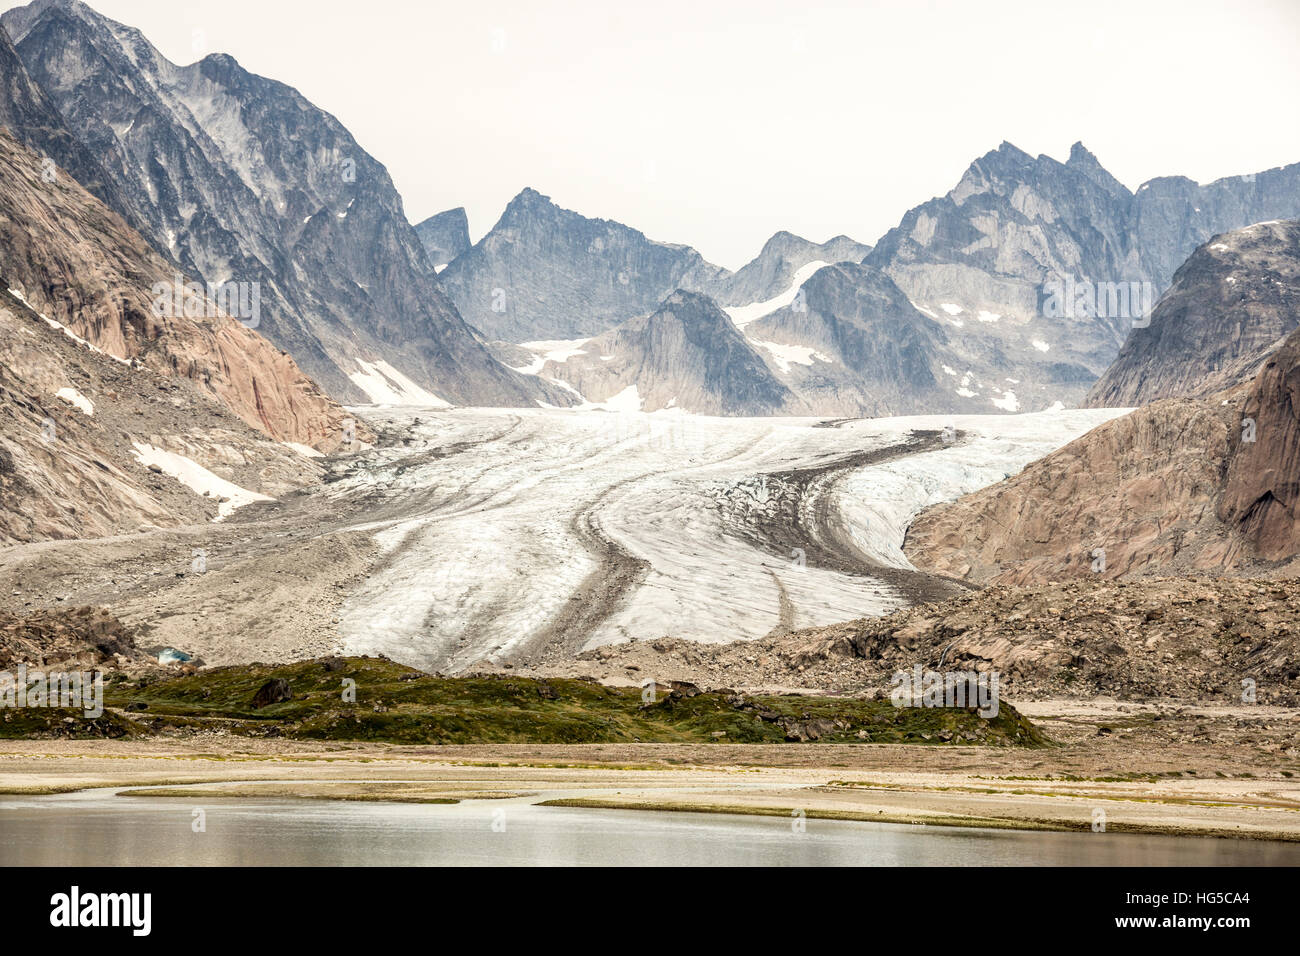 Prins Christian Sund, lateral and medial moraines on Igdlorssuit Glacier, southern Greenland, Polar Regions - Stock Image